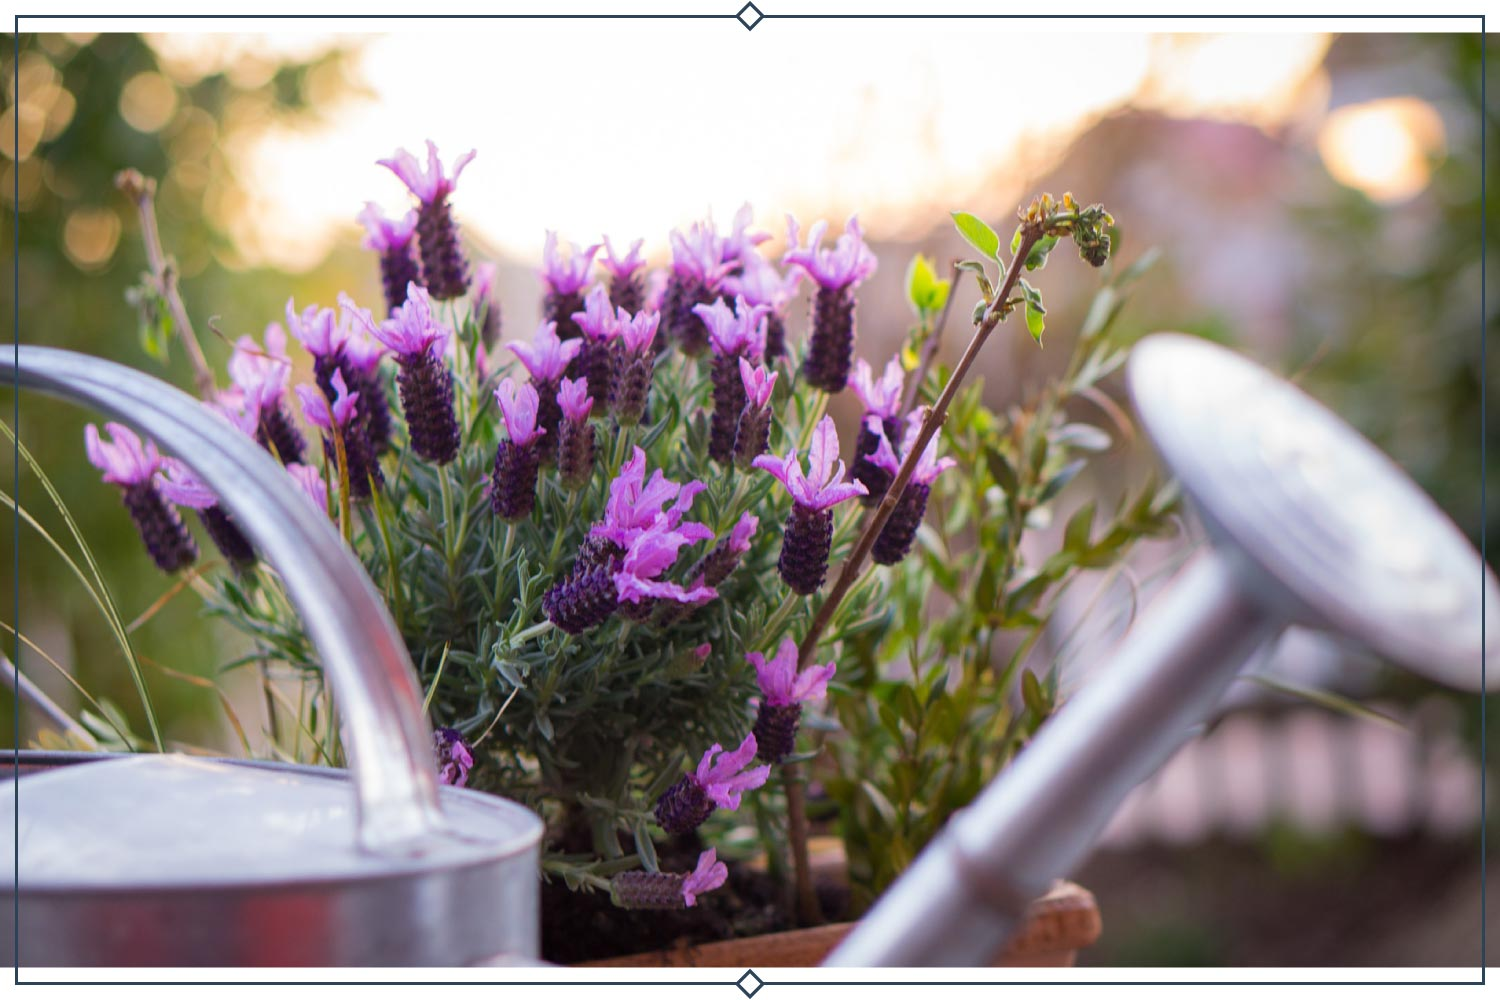 types of lavender in a pot